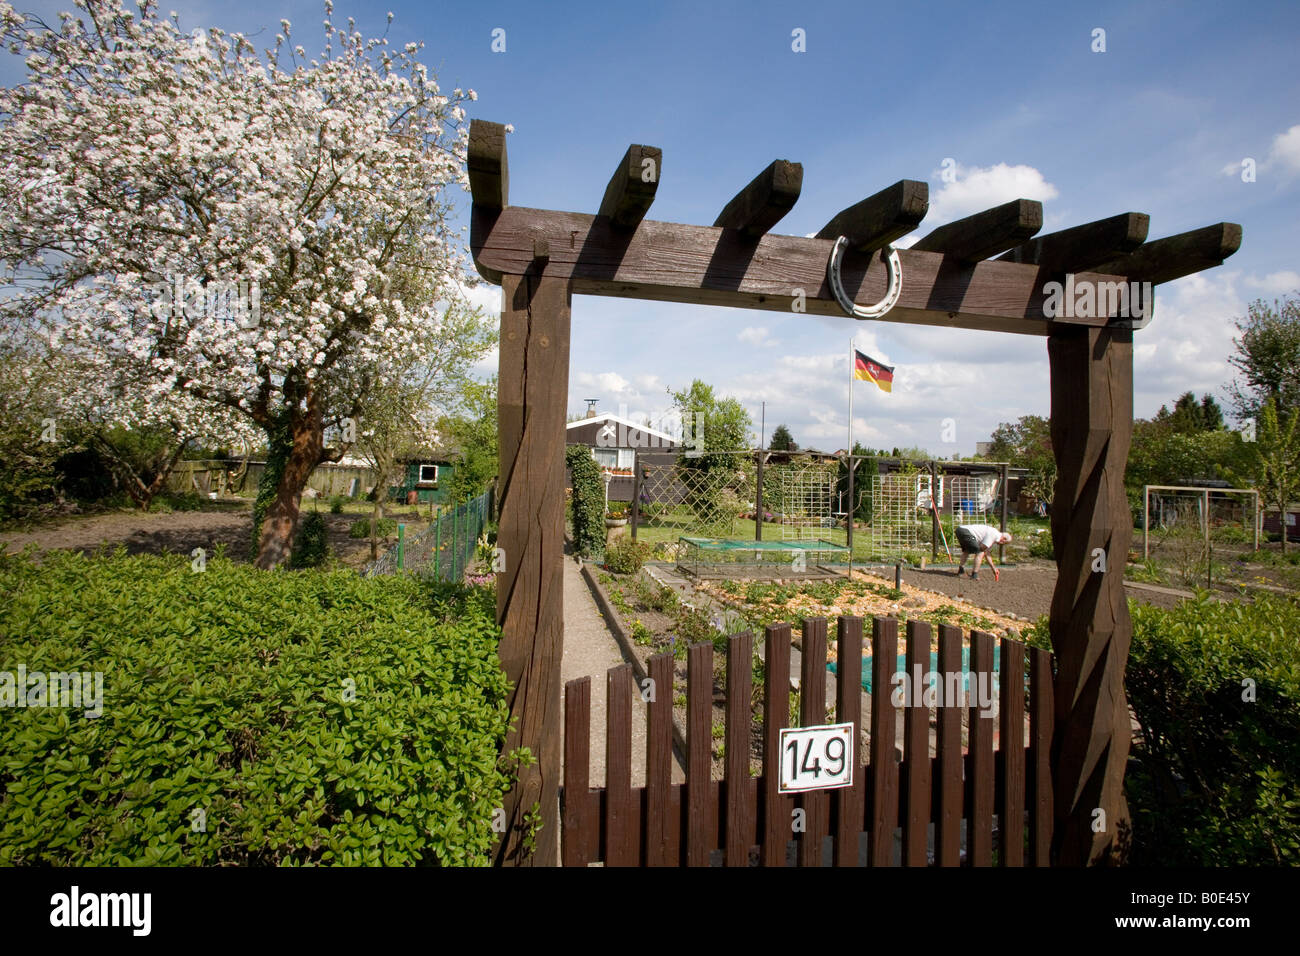 Typical german allotment garden in spring - Stock Image